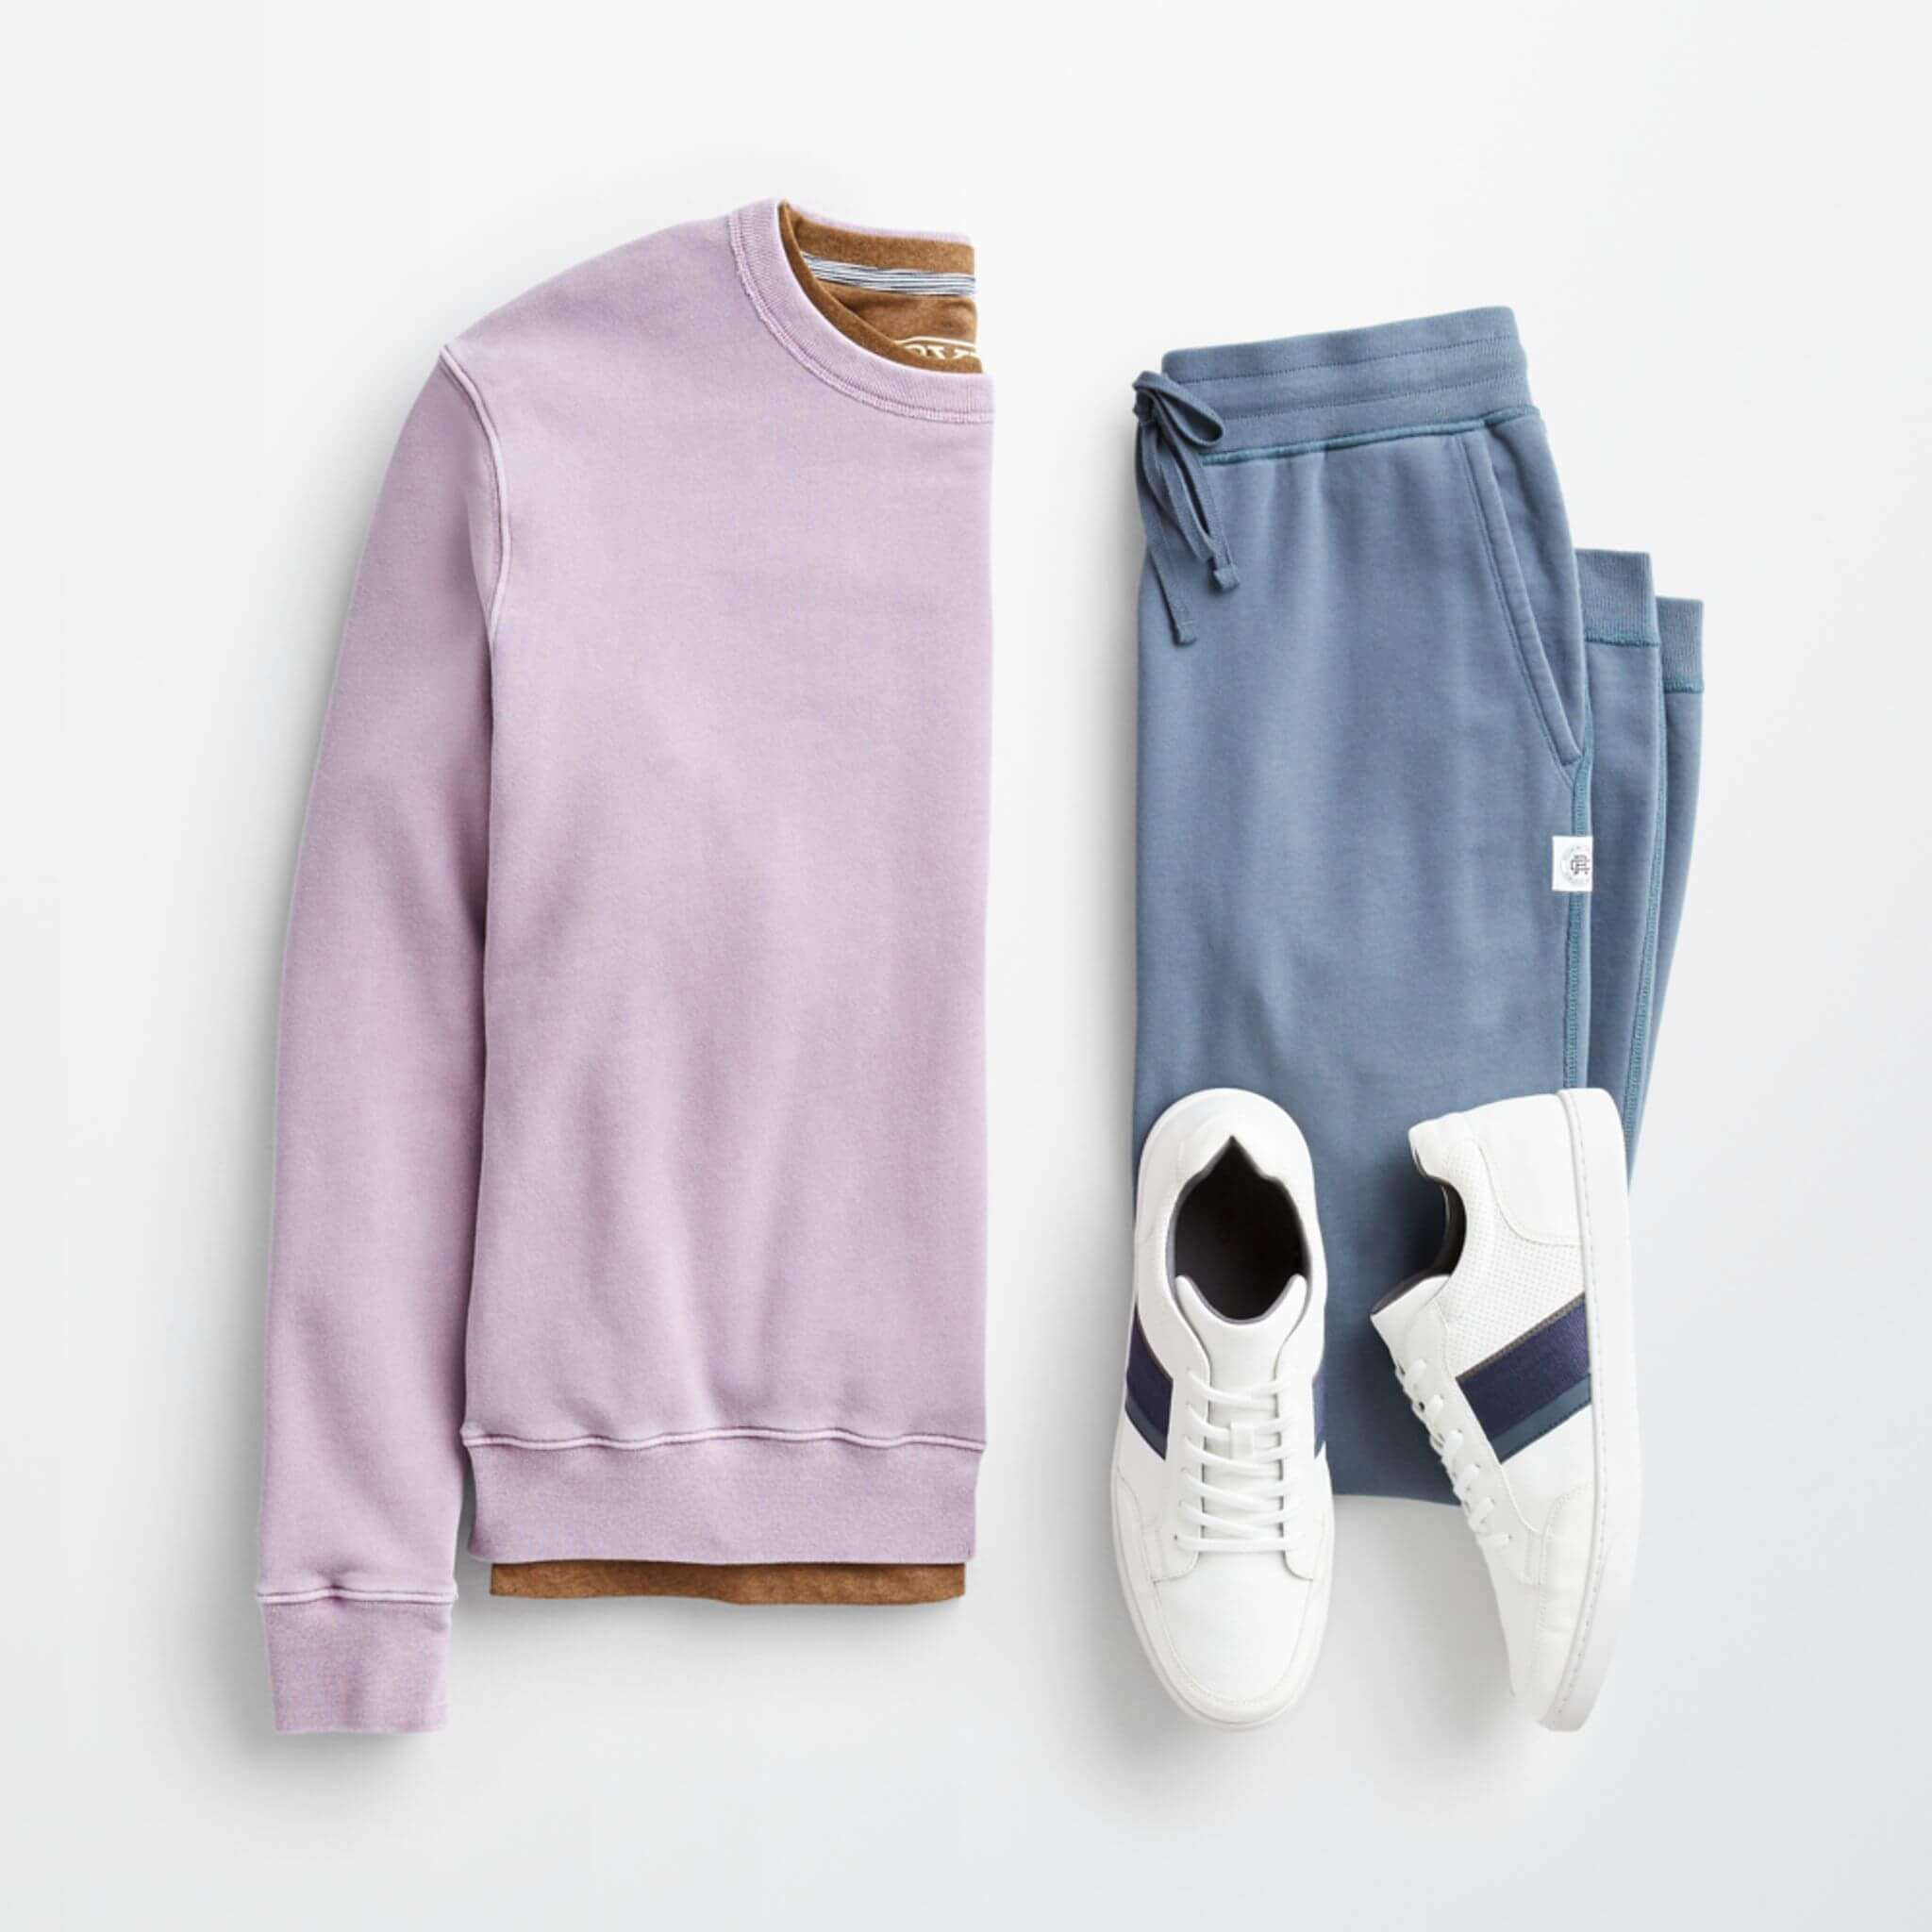 Stitch Fix Men's outfit laydown featuring a light purple crewneck sweatshirt over a brown t-shirt, next to blue sweatpants and white sneakers.